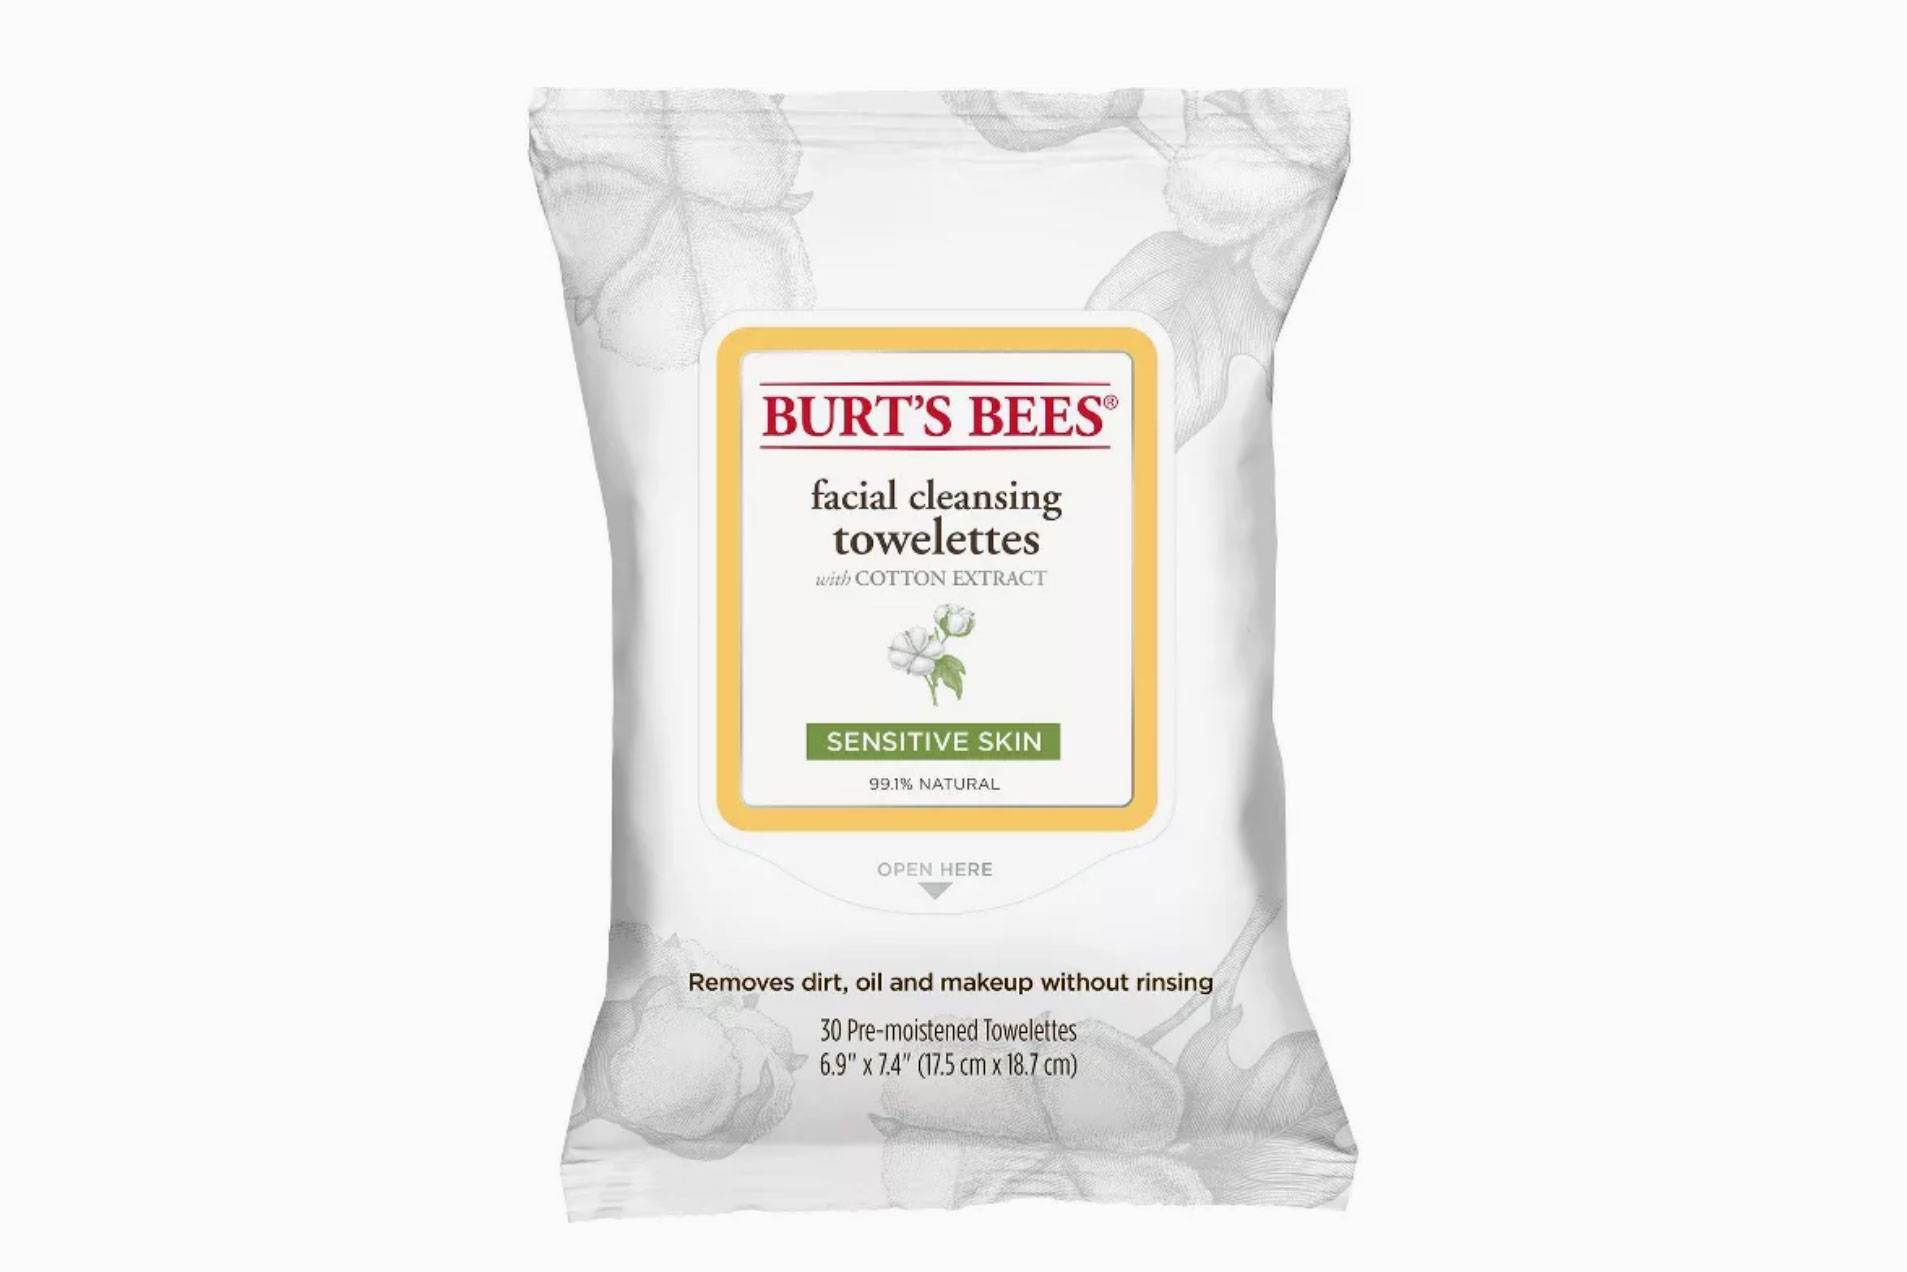 Burt's Bees Facial Cleansing Towelettes Sensitive Skin